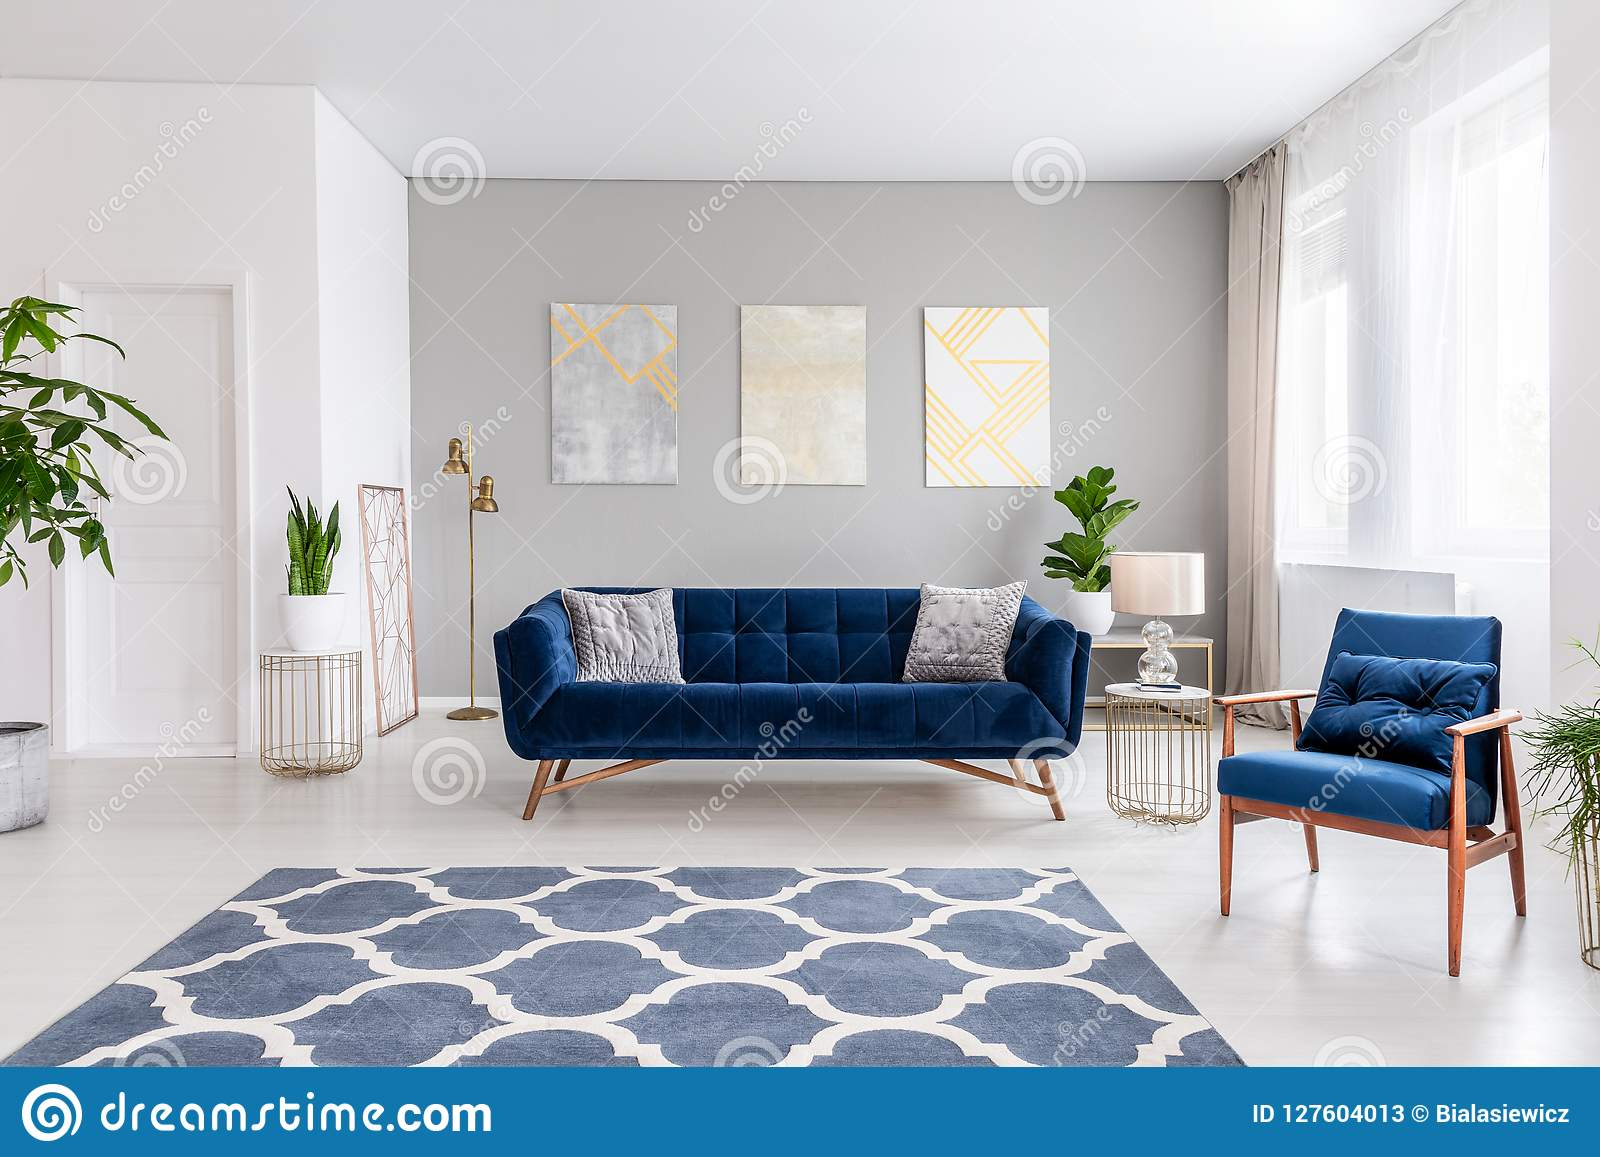 Open Space Living Room Interior With A Navy Blue Sofa And An Armchair Rug On The Floor And Graphic Decorations On The Wall Real Stock Image Image Of Living Inside 127604013